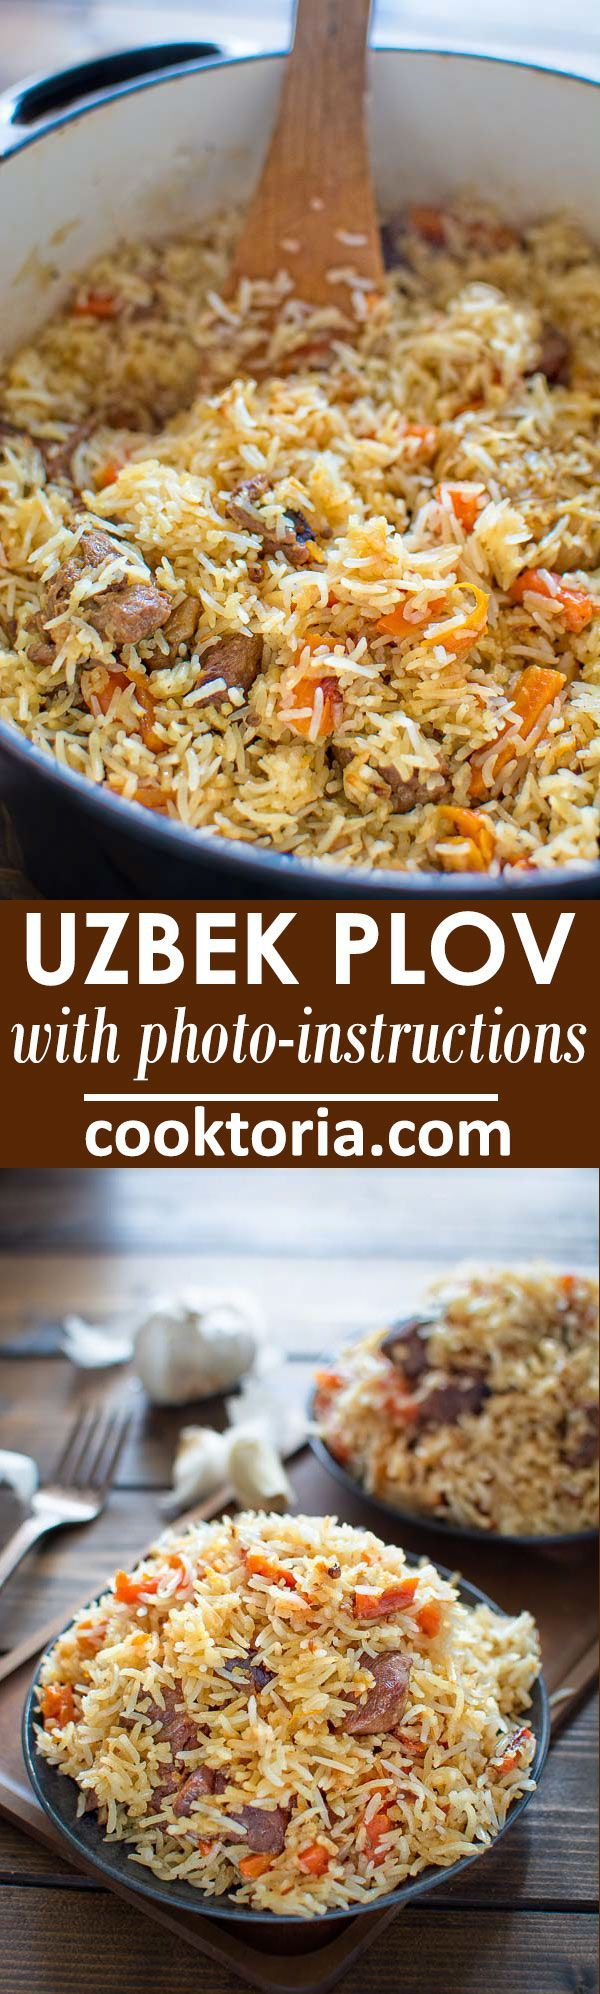 This is a classic recipe for a loved-by-everyone Uzbek Plov, also called Pilaf. My simple photo instruction will help you cook it to perfection. ❤ http://COOKTORIA.COM